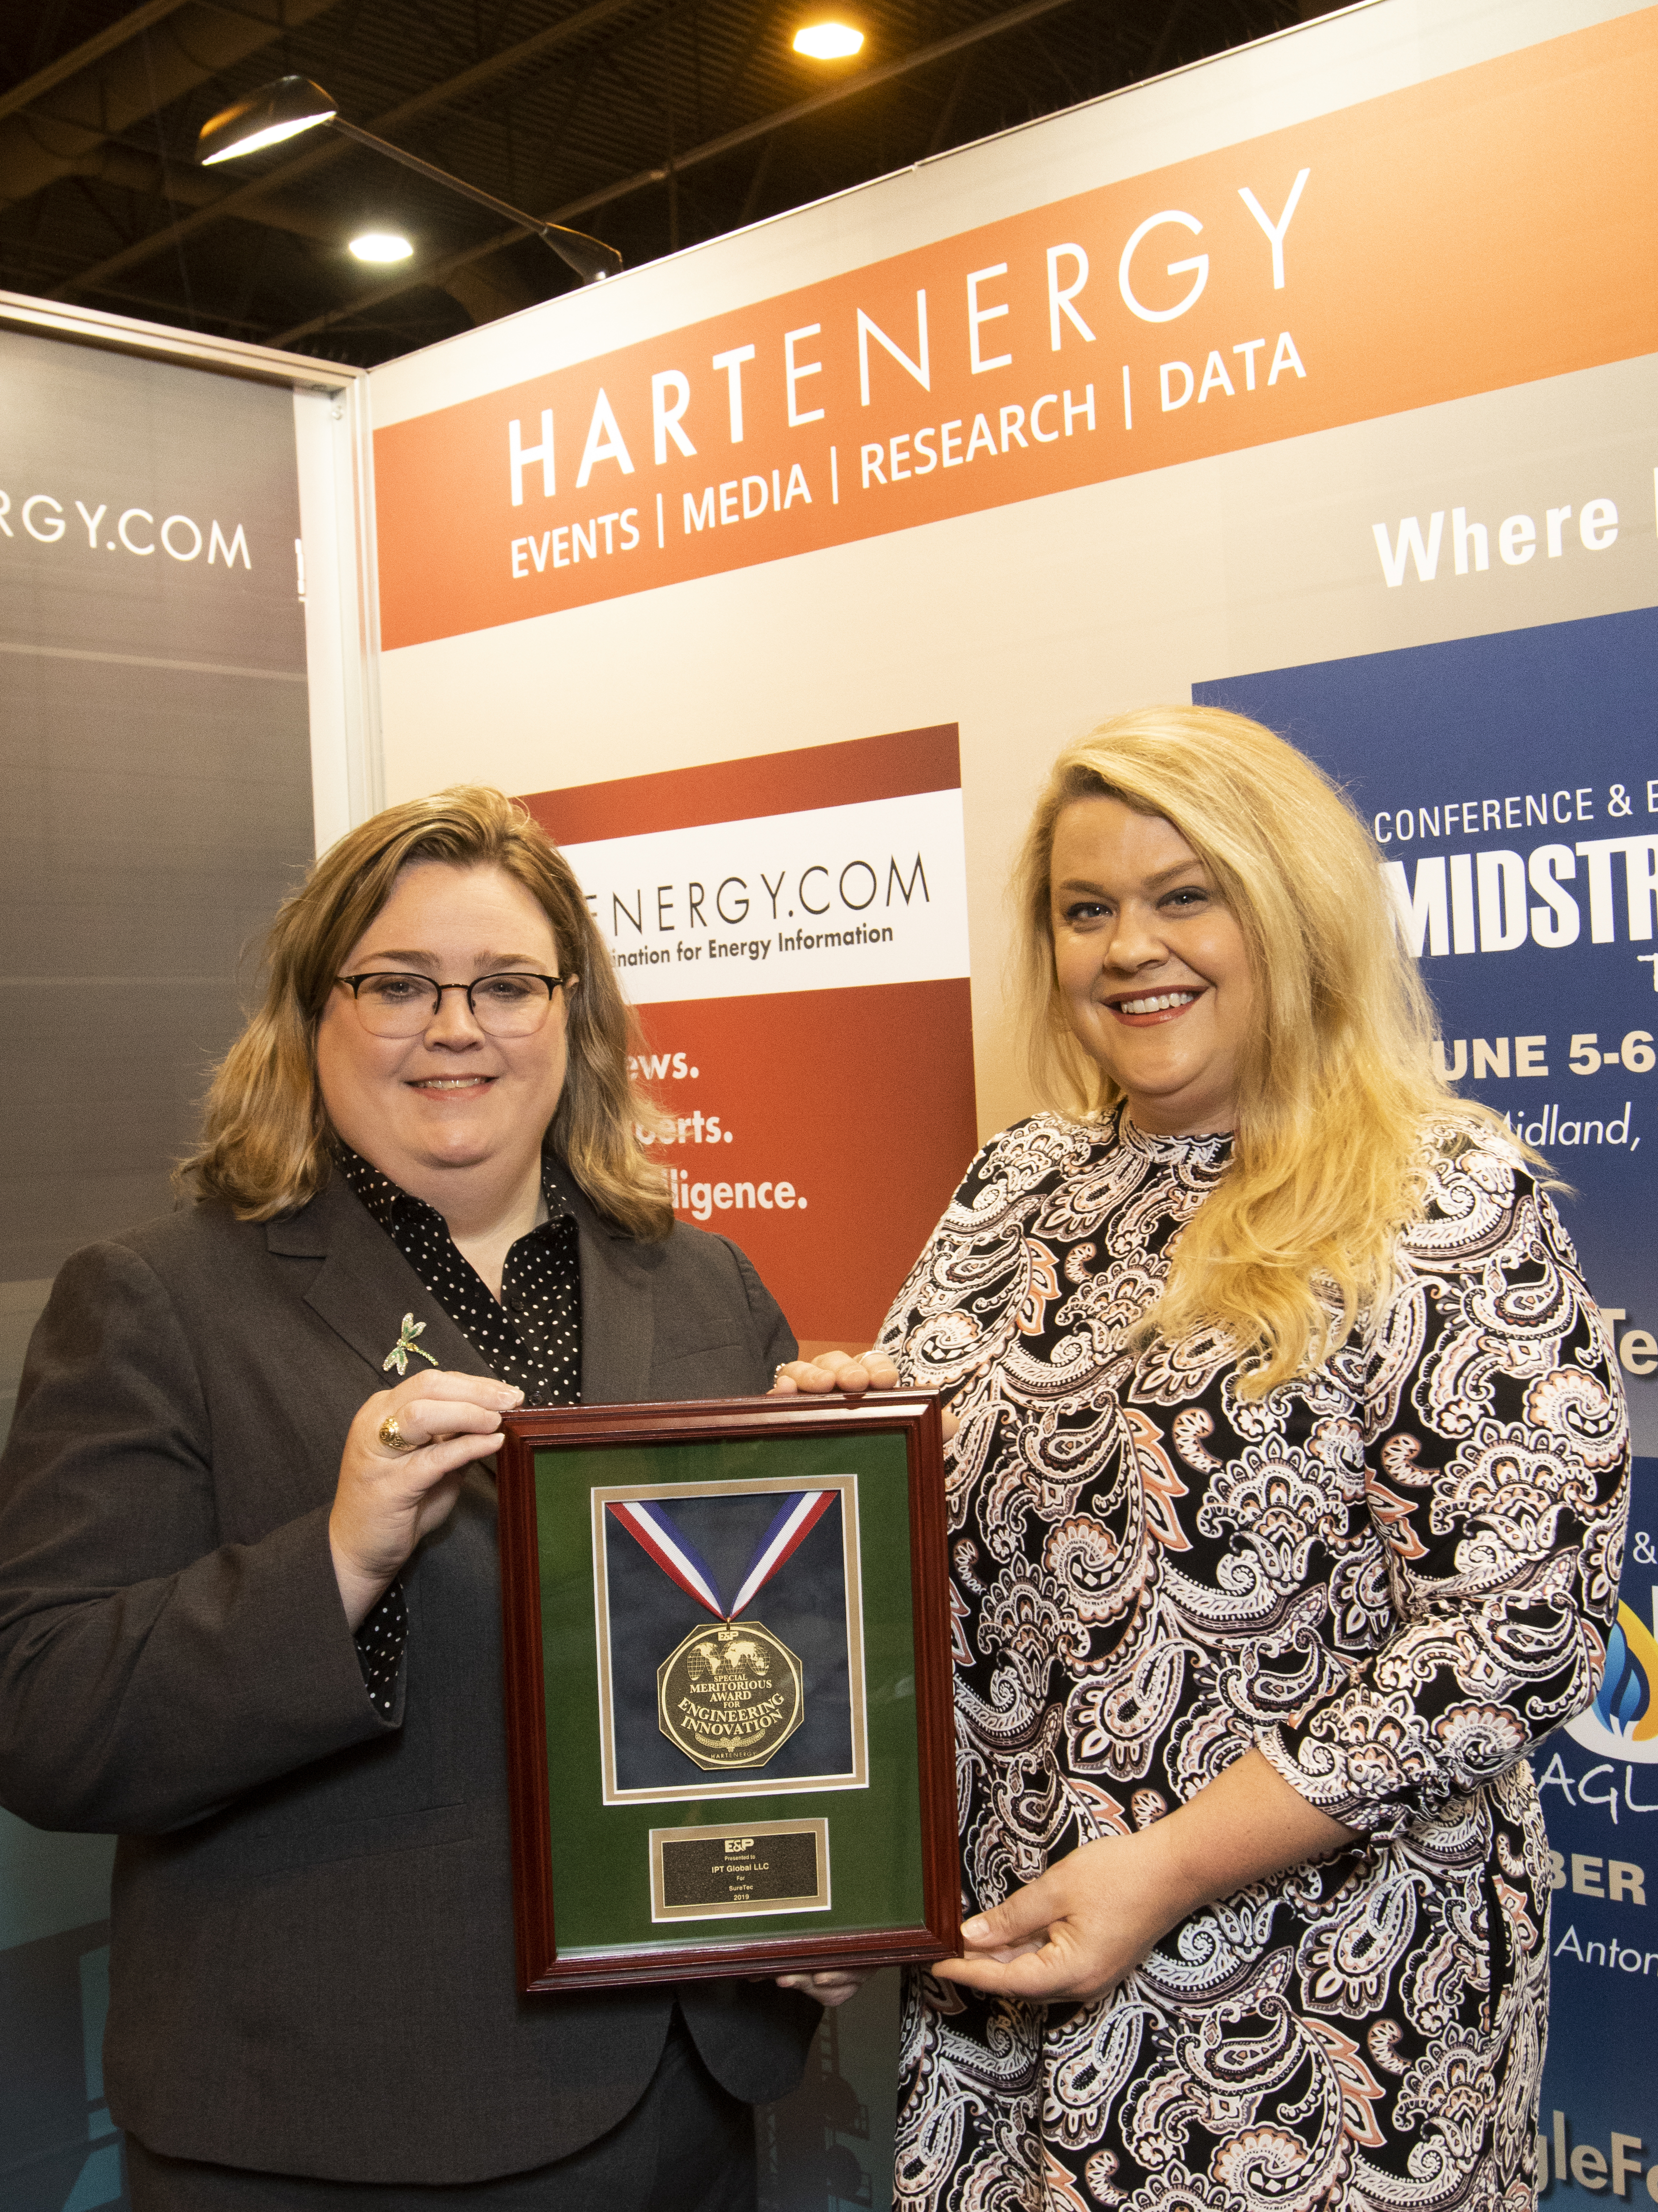 E&P's Jennifer Presley (left) presented an award to Kara French (right) of IPT Global LLC for SureTec, winner of the intelligent systems and components category.